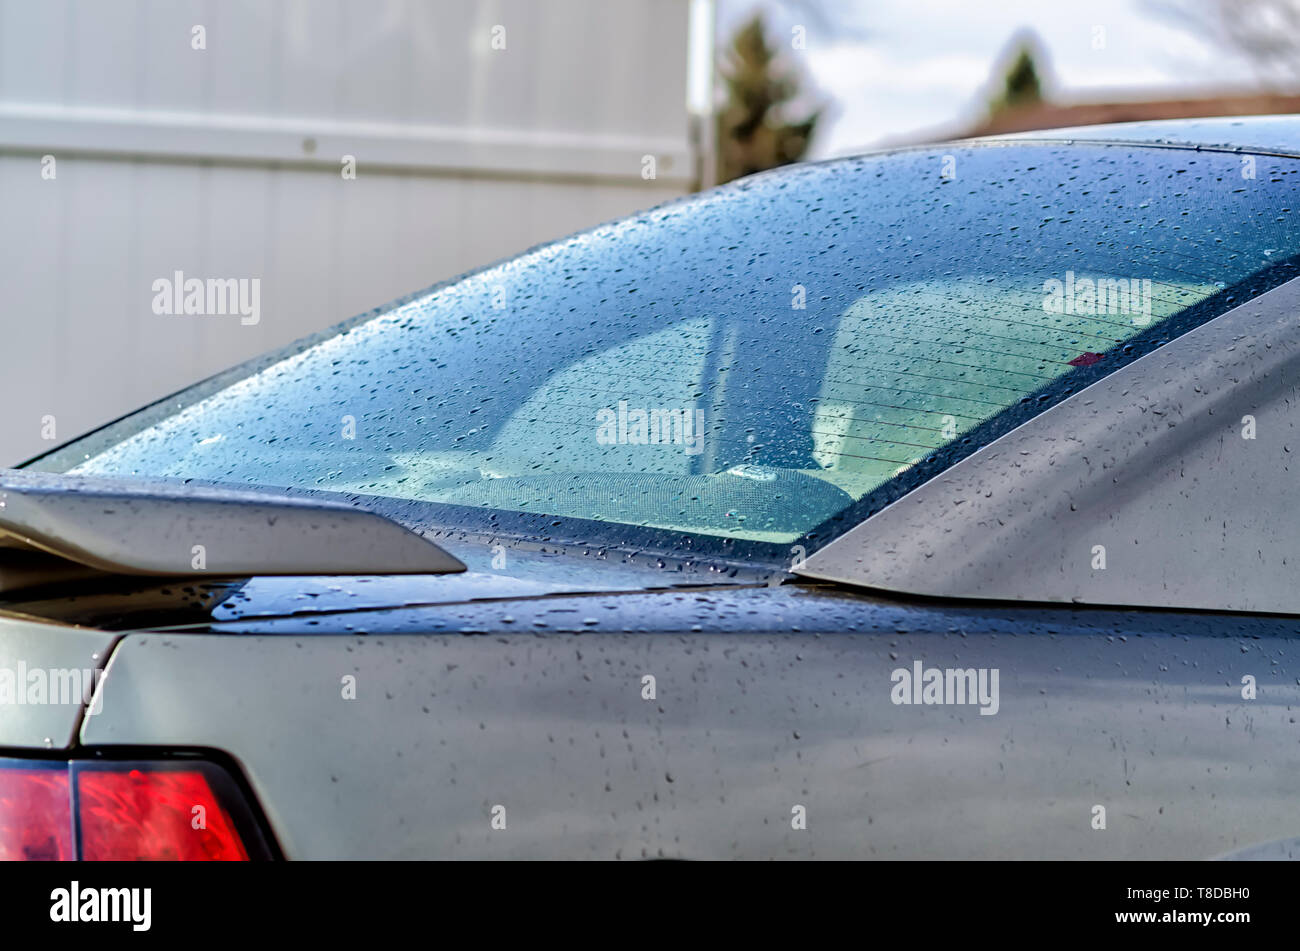 Tiny water drops/droplets sticking to the body/rear windshield of a Ford Mustang GT Coupe, after a summer storm. - Stock Image